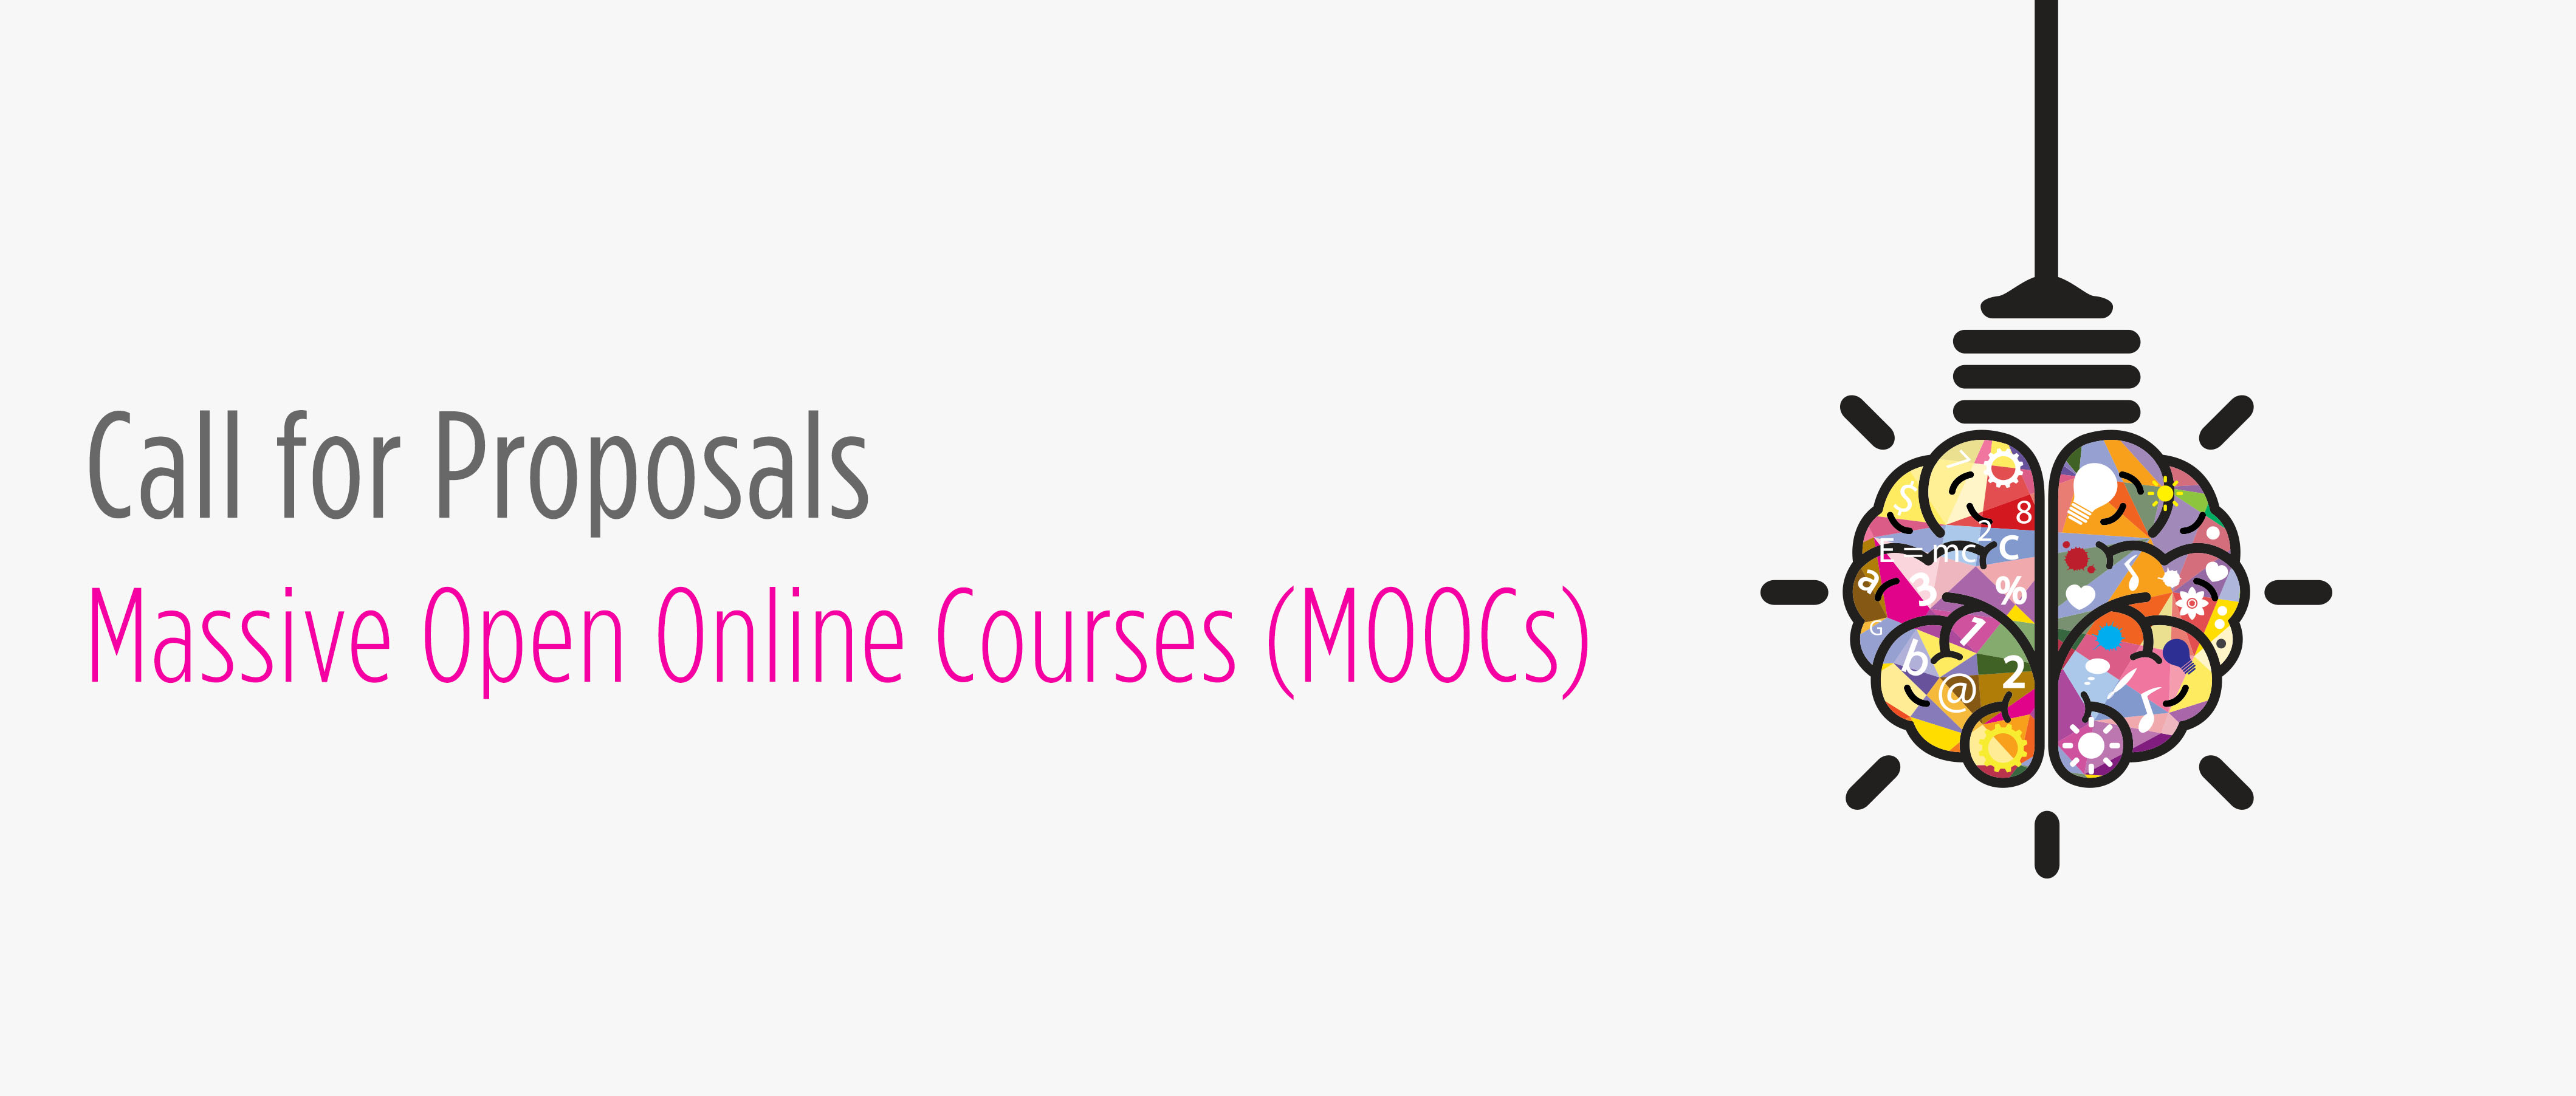 mooc-call-for-proposals-2016